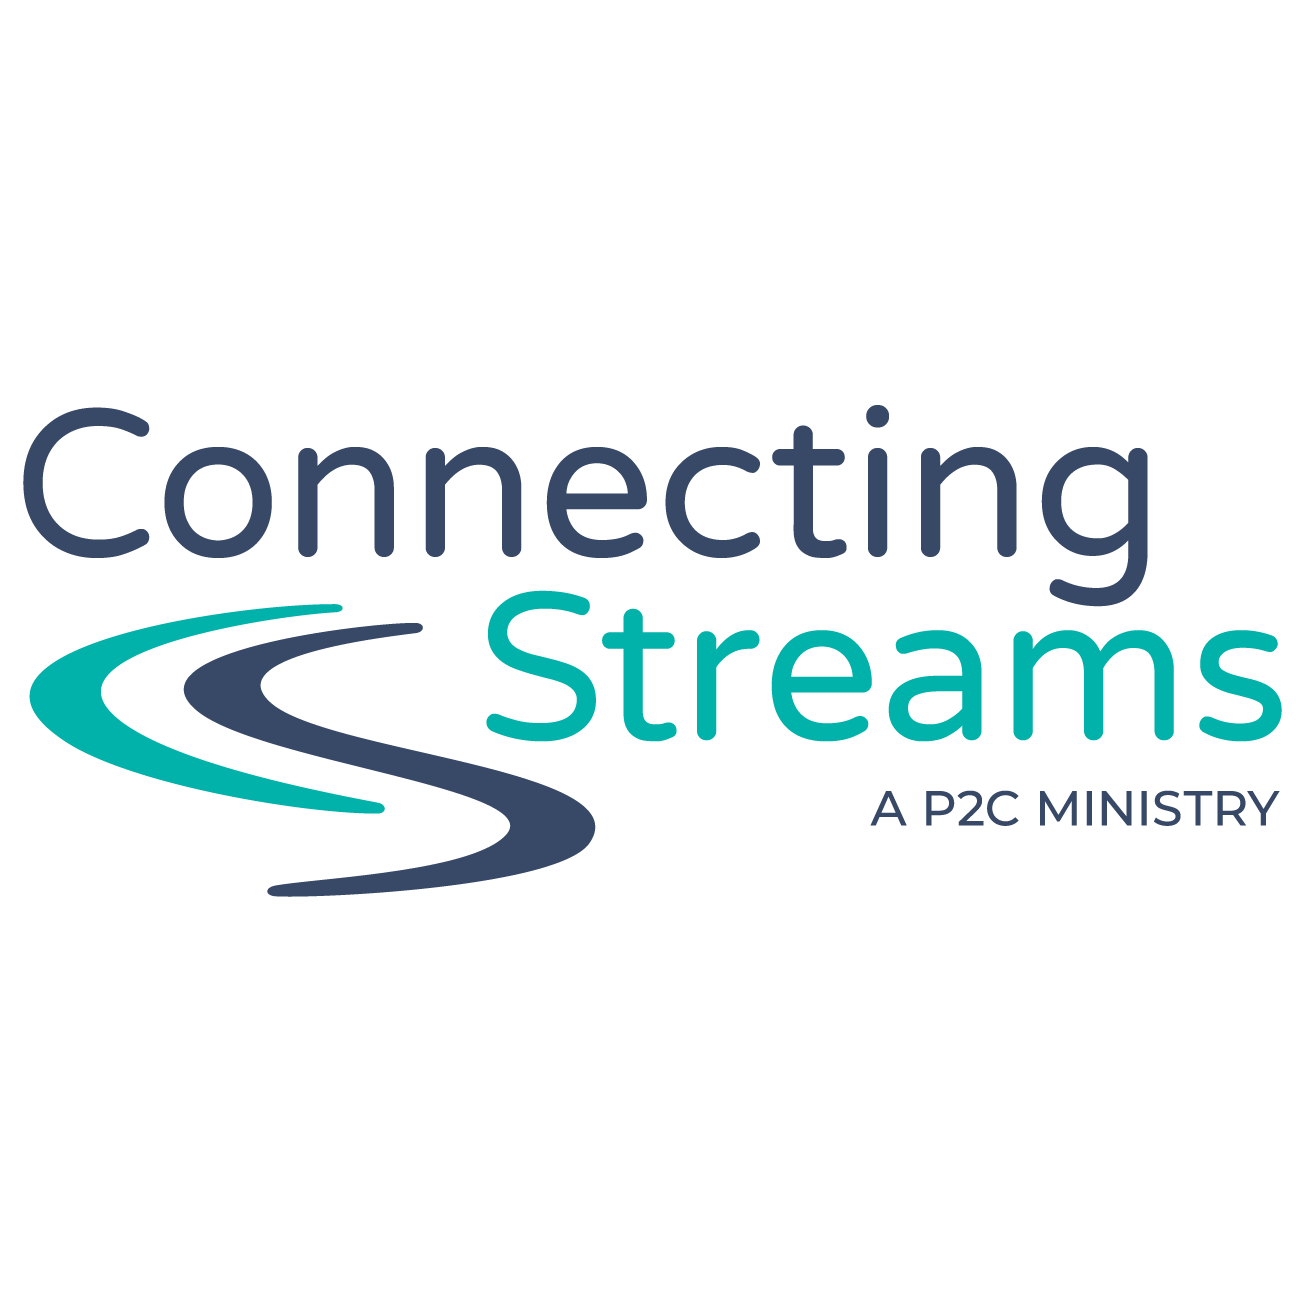 Connecting Streams